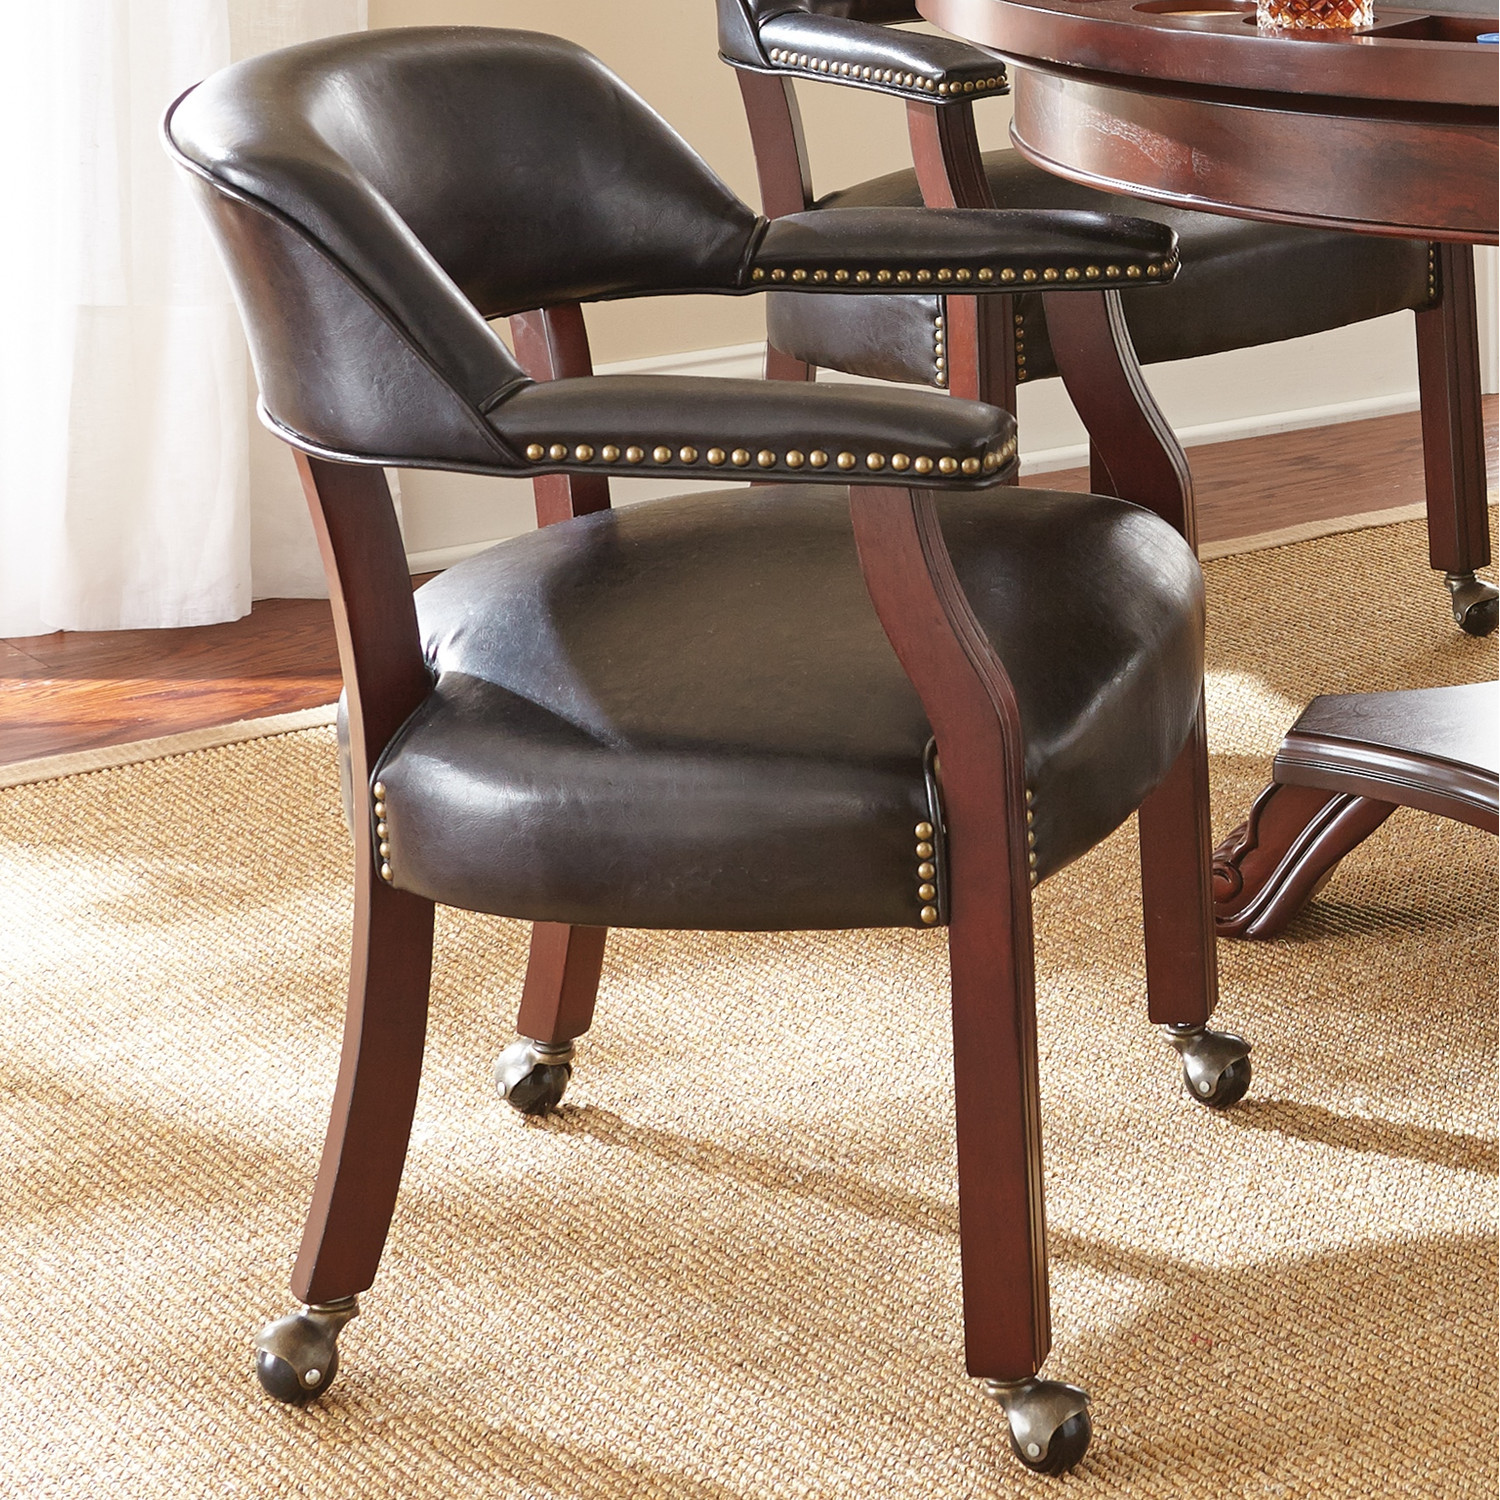 Image of: Dining Chairs with Casters or Rollers